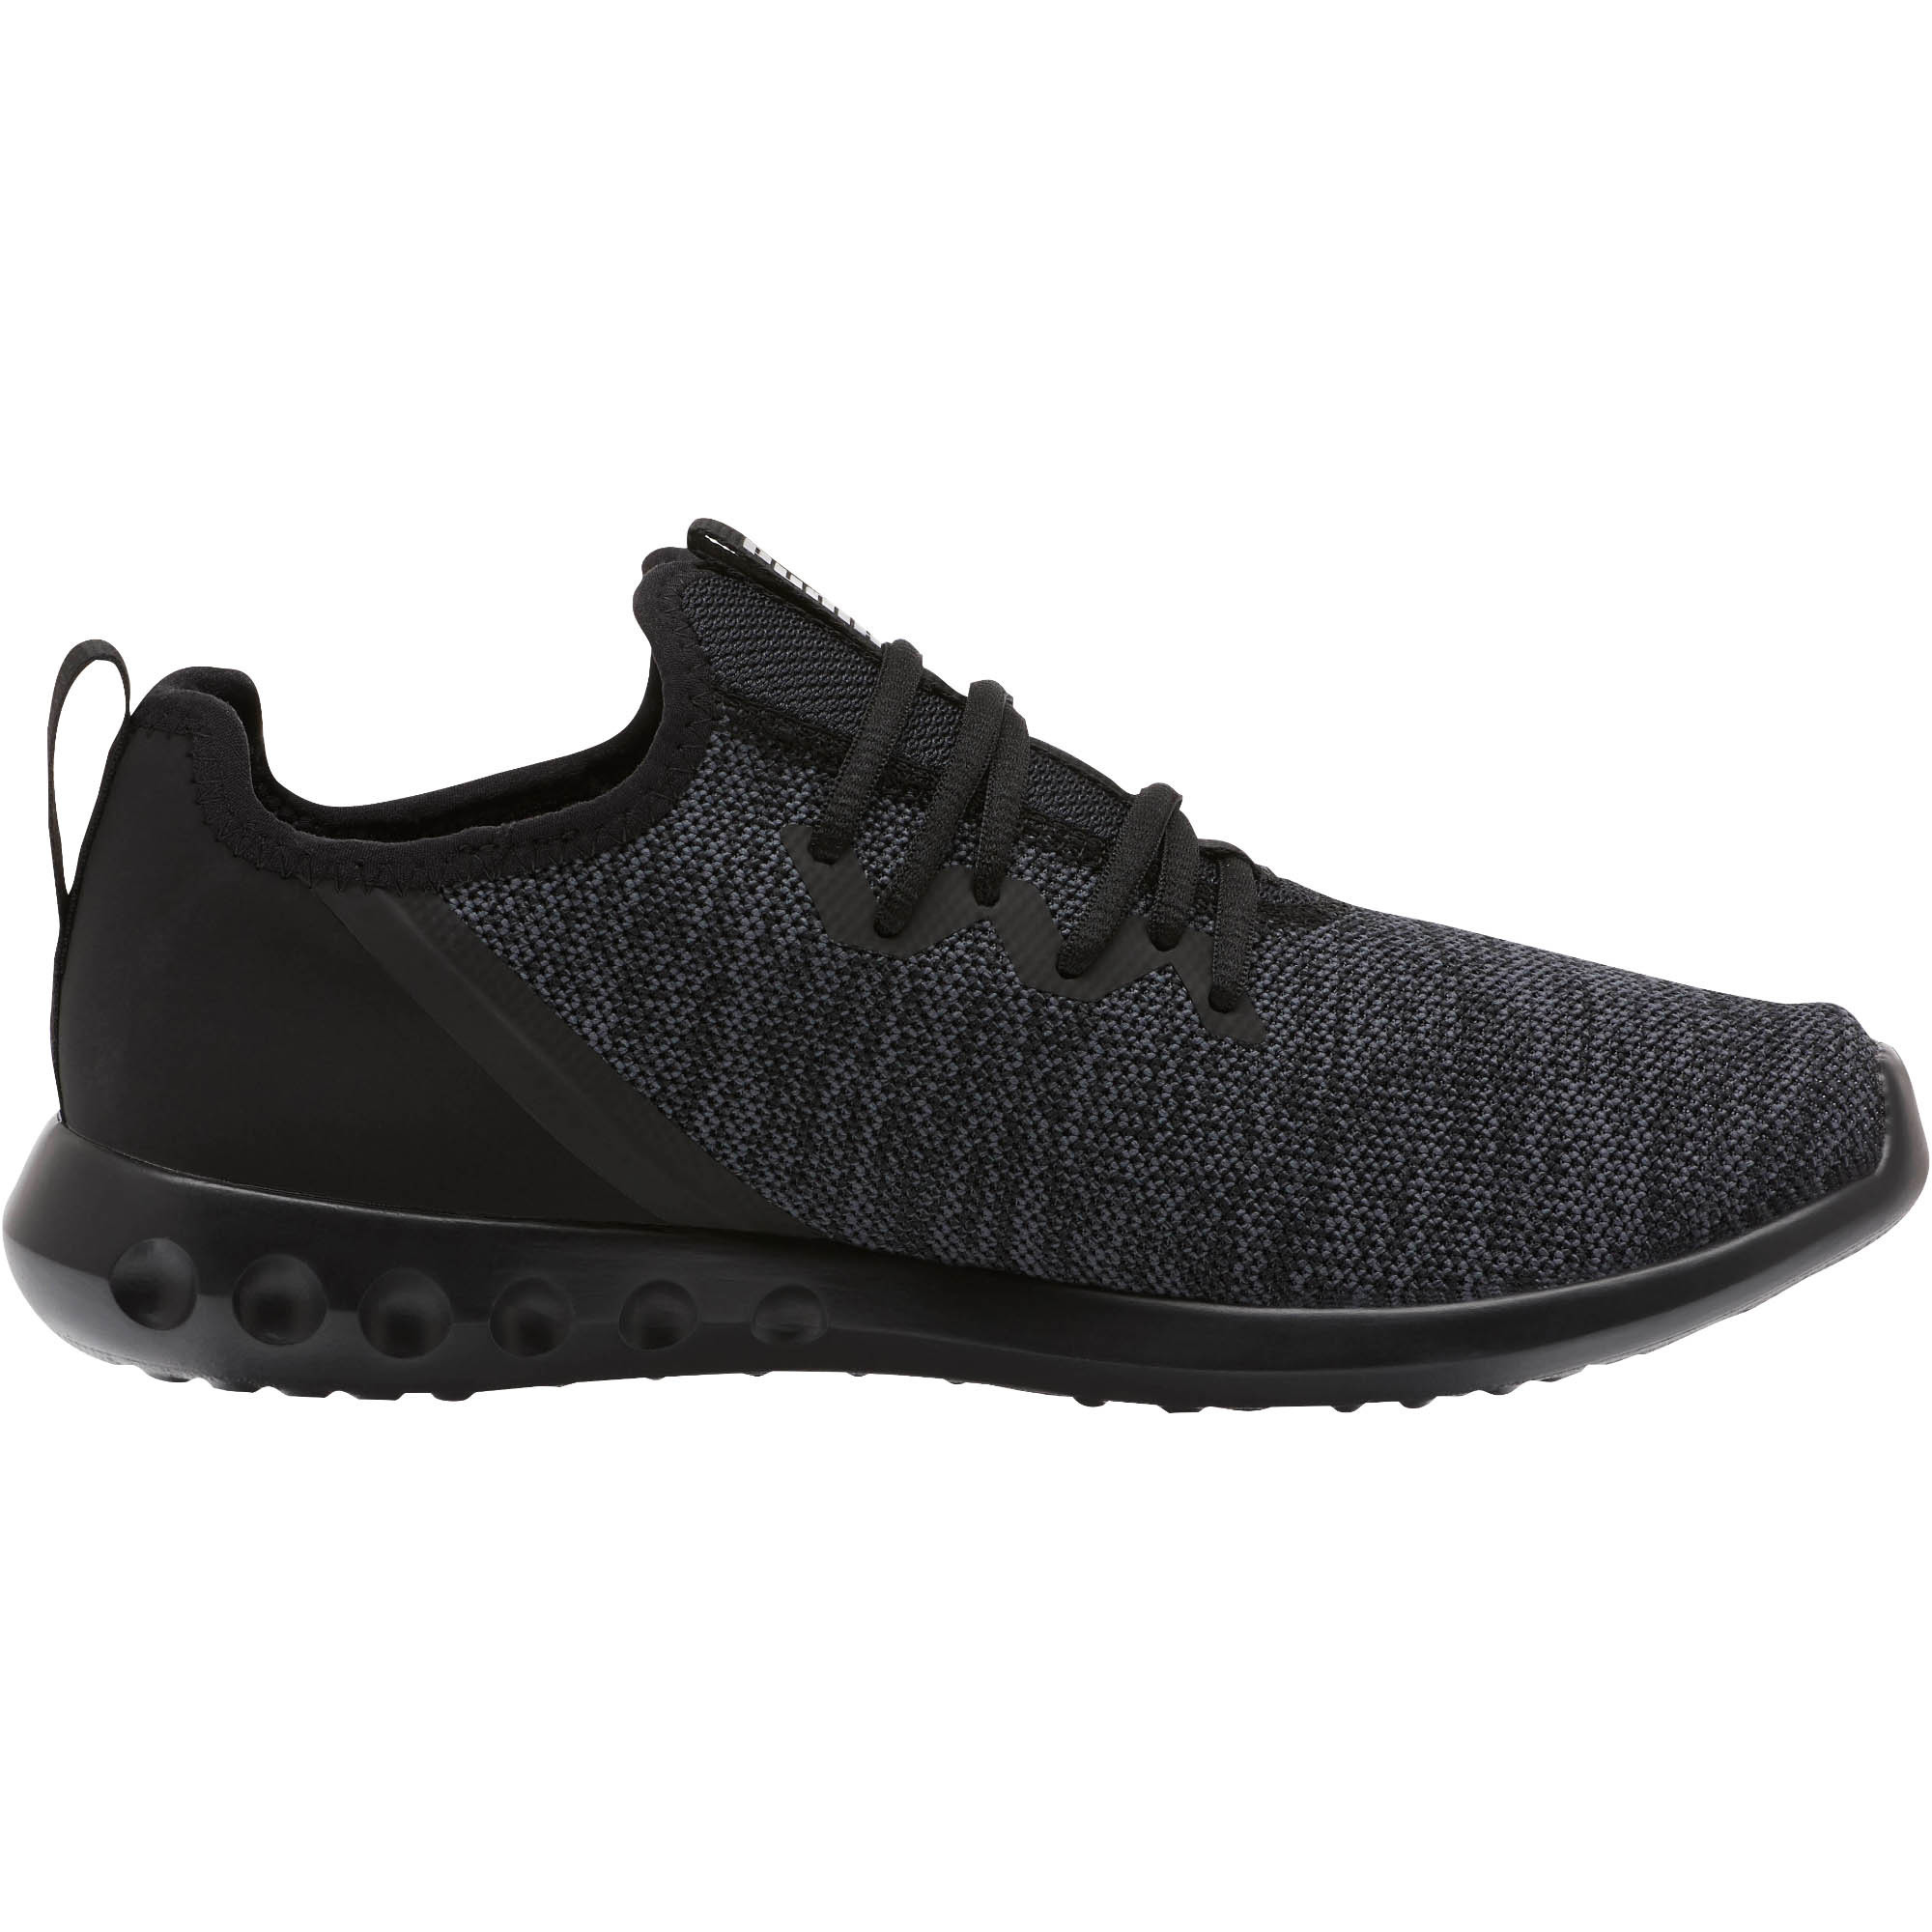 PUMA-Carson-2-X-Knit-Men-039-s-Running-Shoes-Men-Shoe-Running thumbnail 31